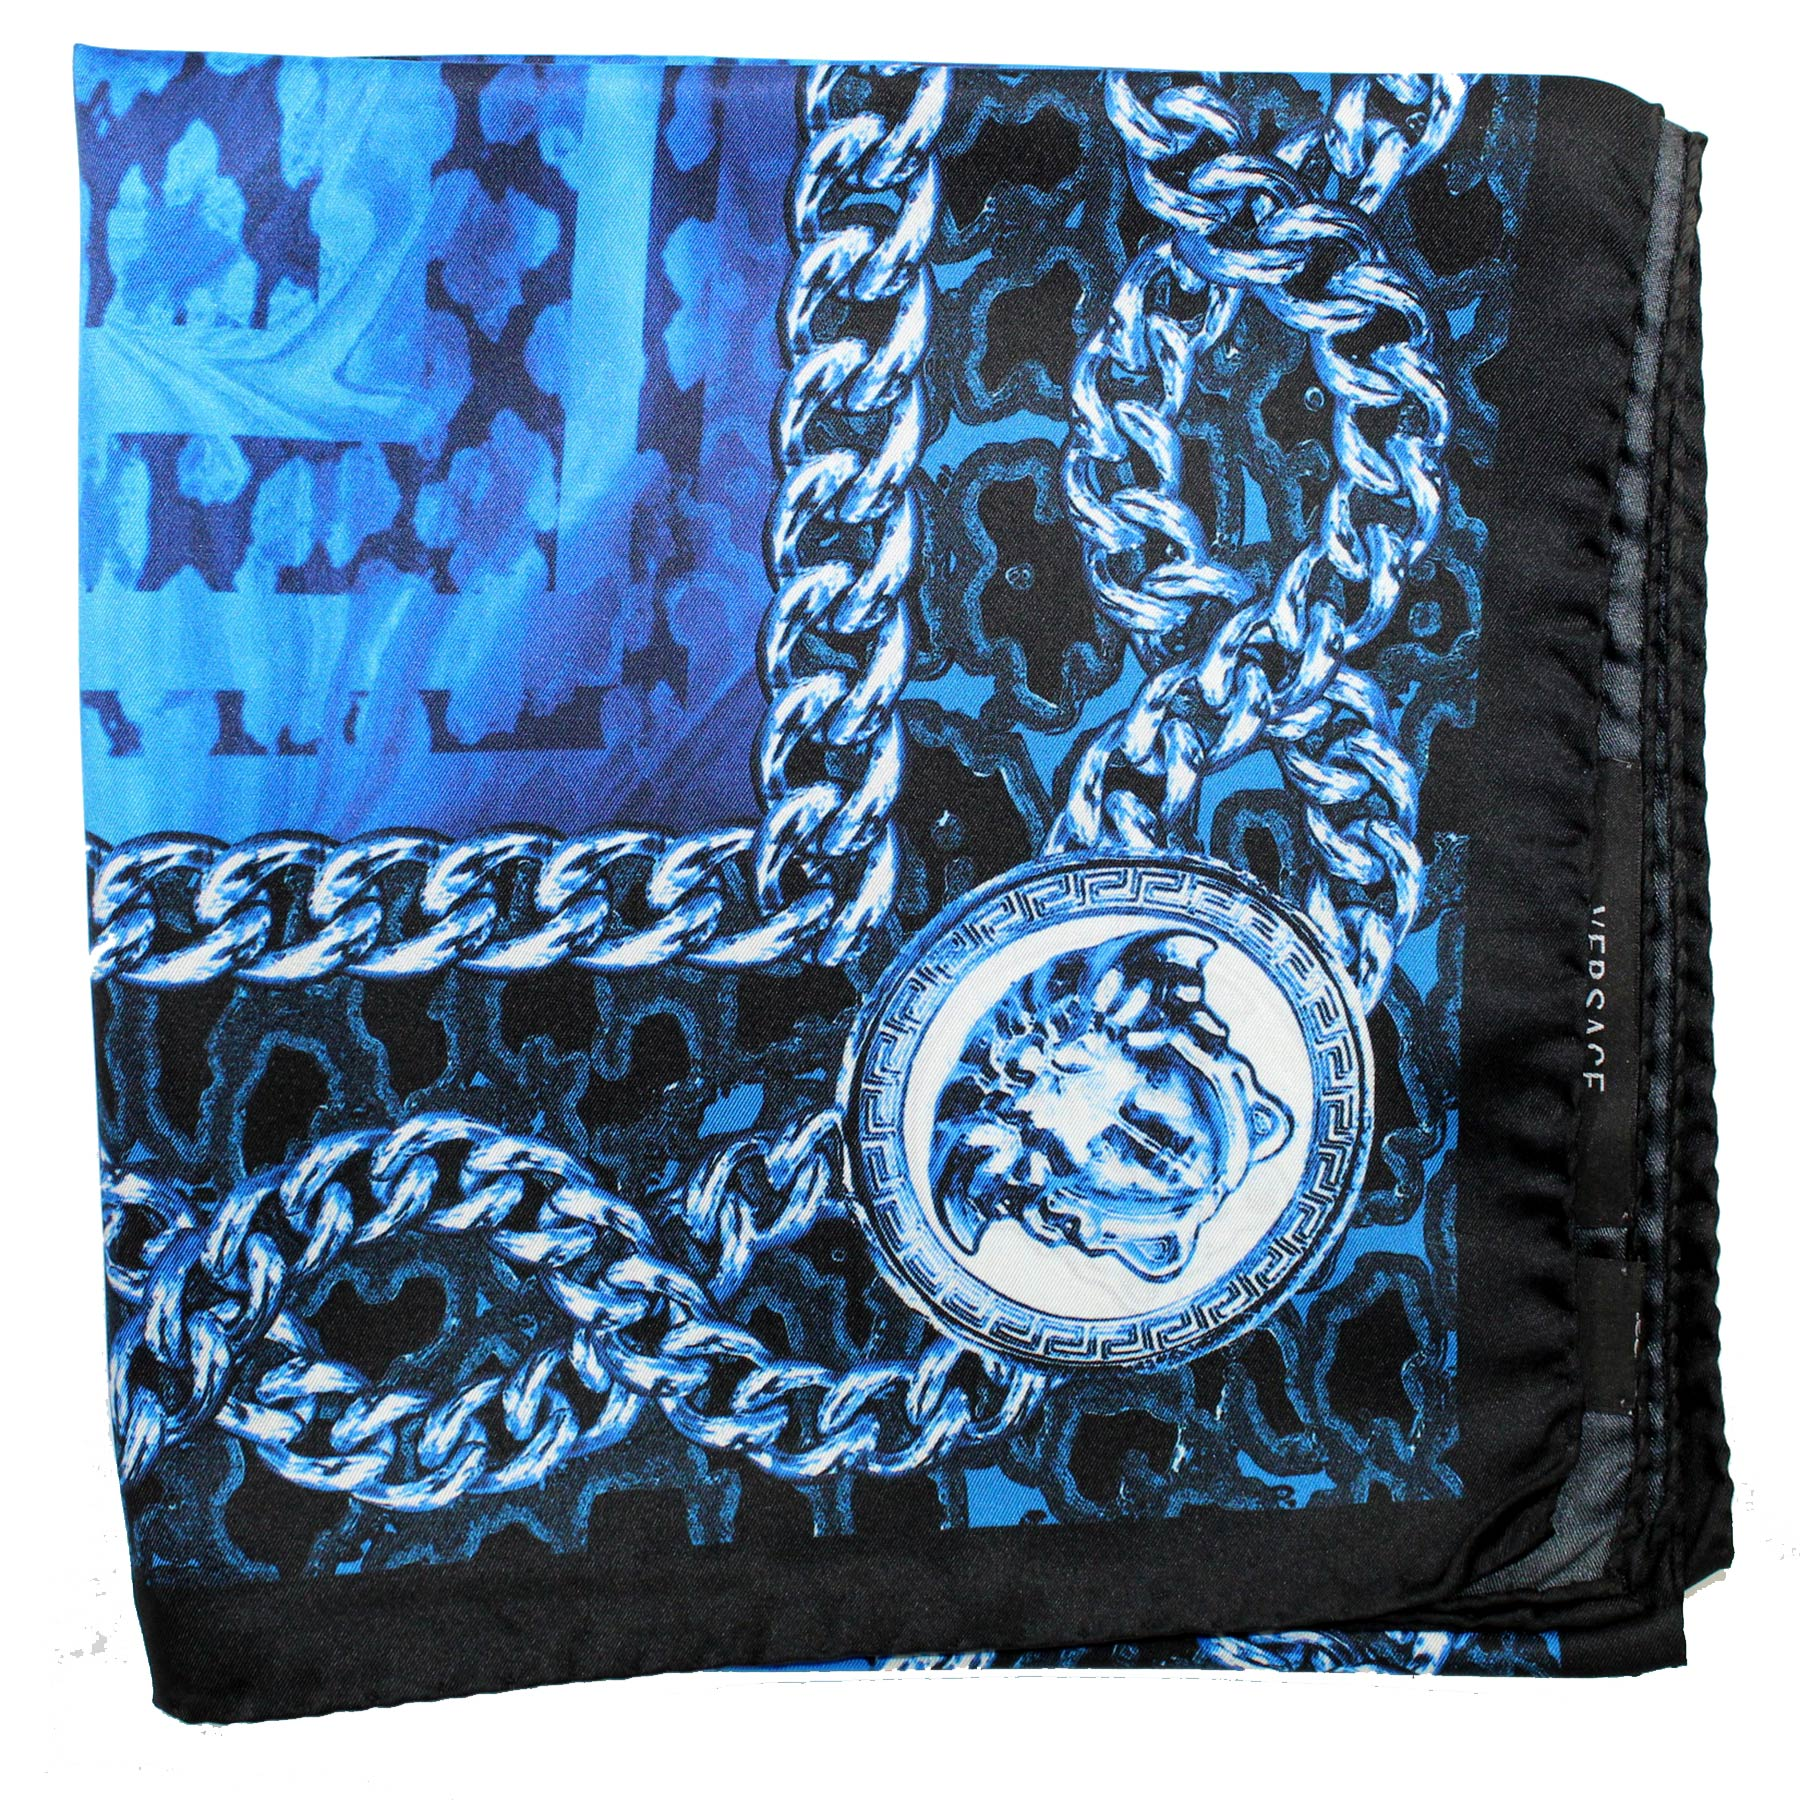 Versace Scarf Dark Blue Chain & Medusa - Large Twill Silk Square Scarf